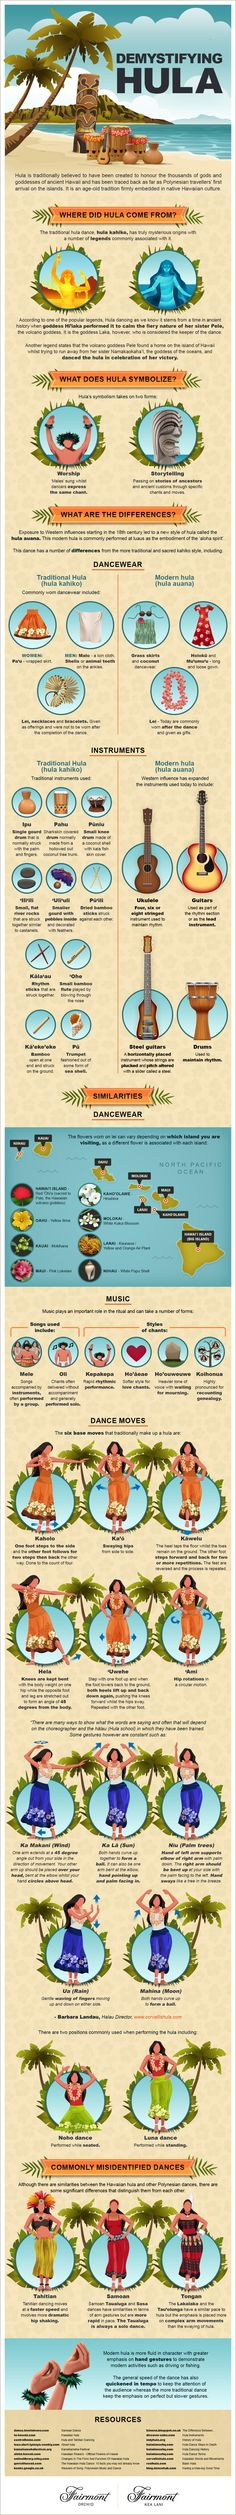 Demystifying Hula #Infographic #Entertainment #Music